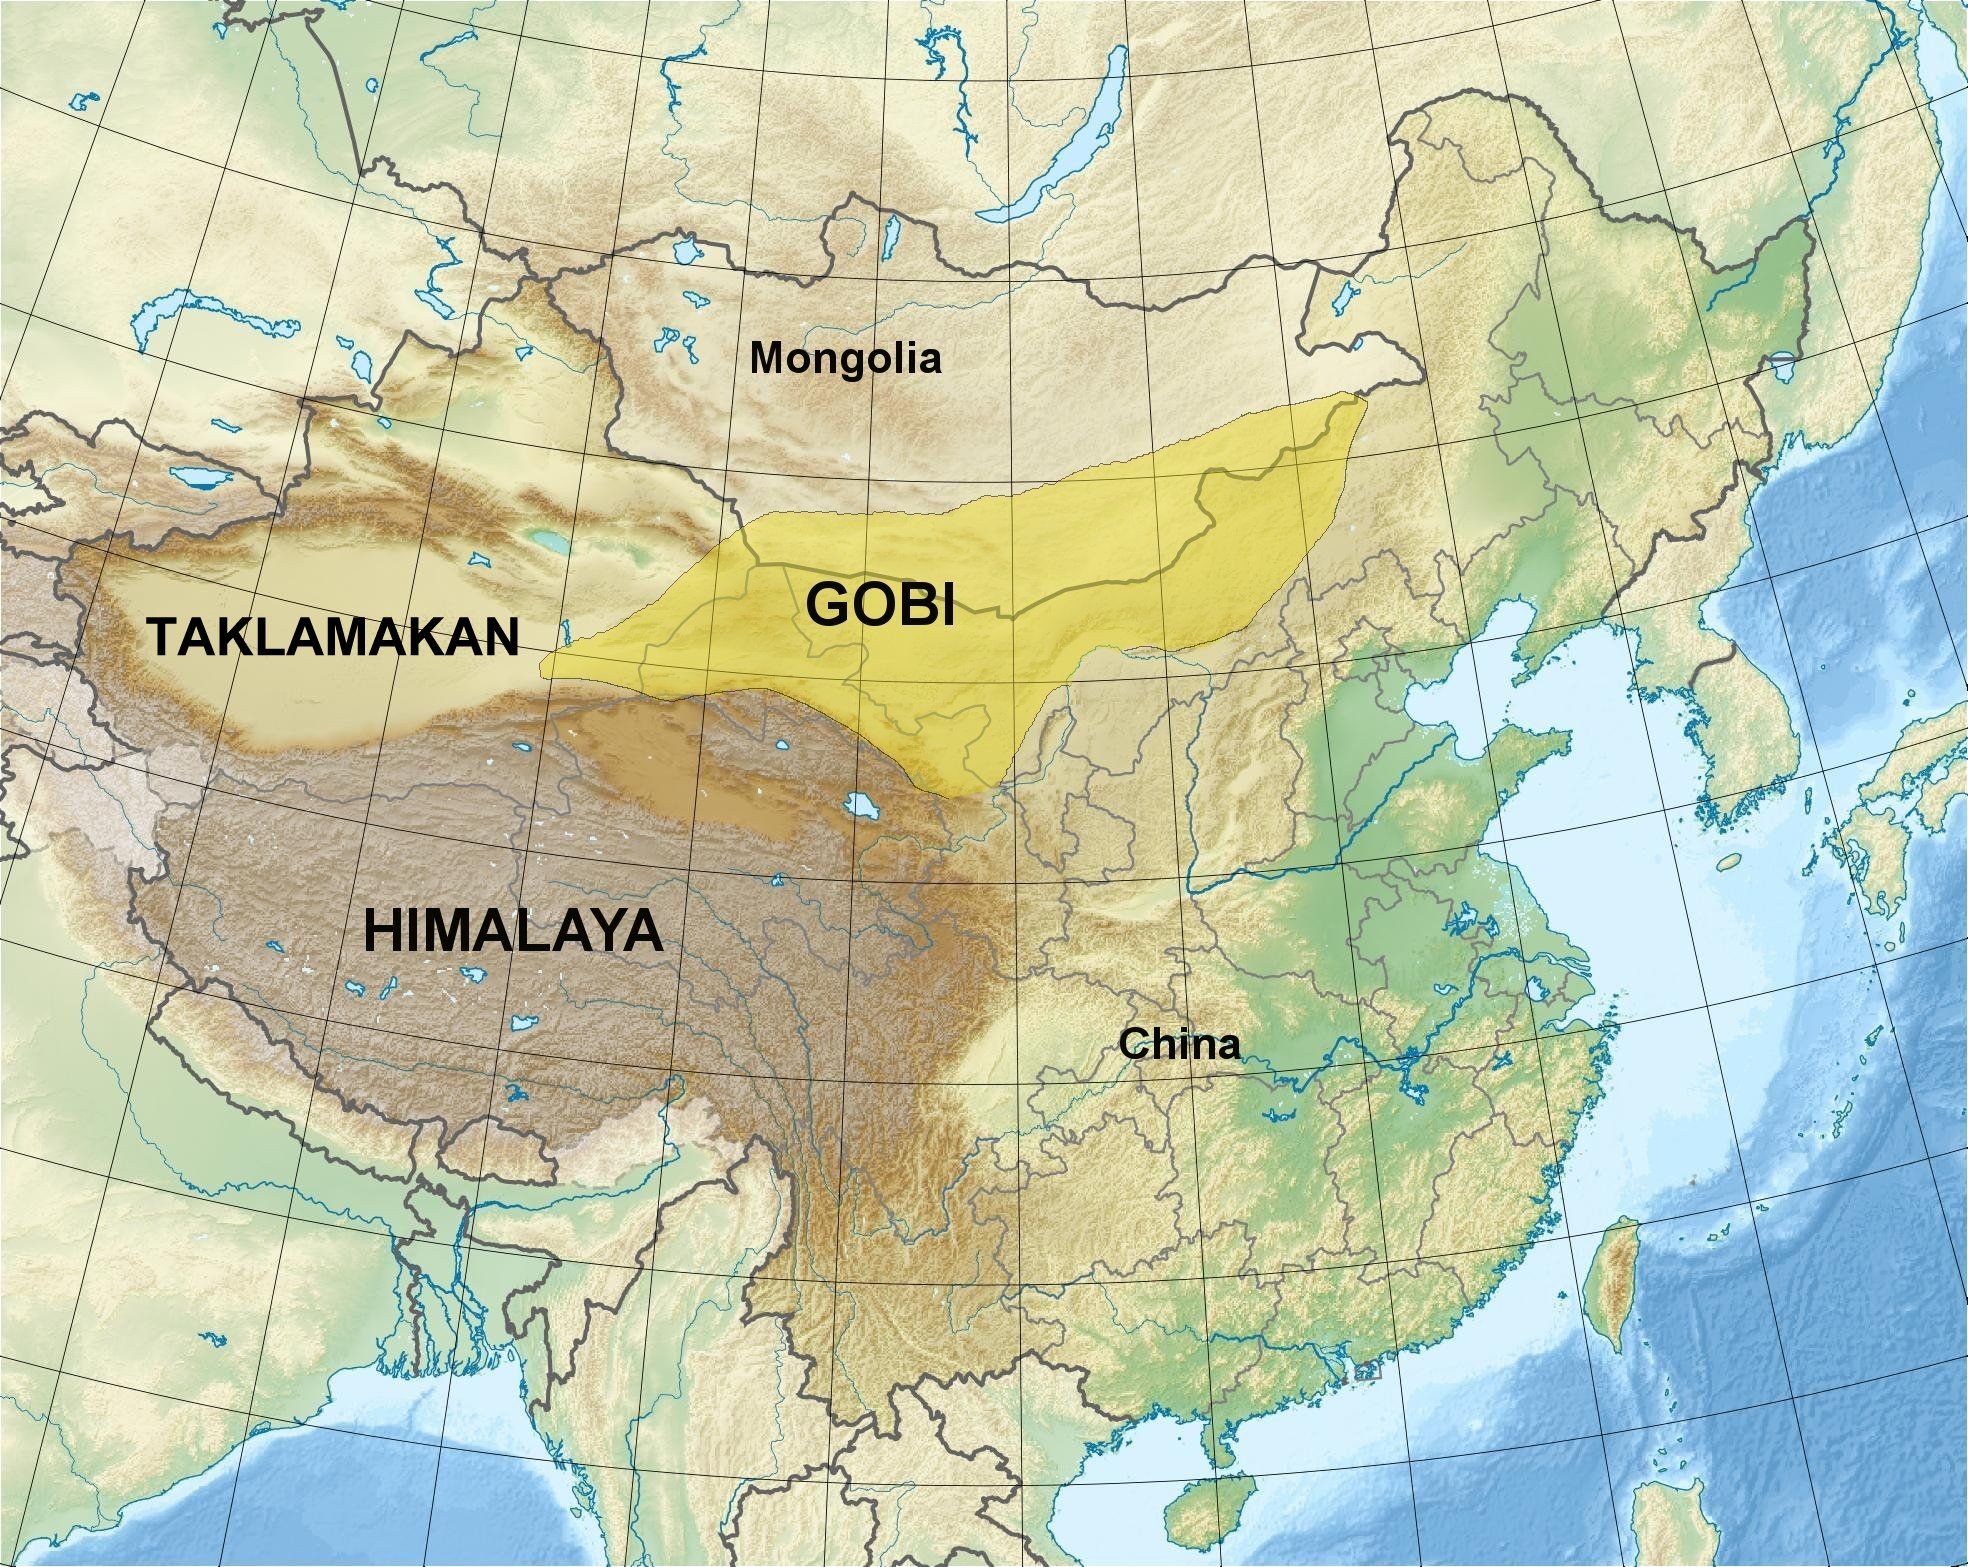 Gobi Desert - Wikipedia on jharkhand india, varanasi india, world map india, north india, nashik india, leader of india, states of india, political world map, map showing india, geography of india, northern region of india, atlas of india, major rivers of india, maps of only india, provinces of india, where's india, political map kerala, political map government, bangalore india, maps for india,